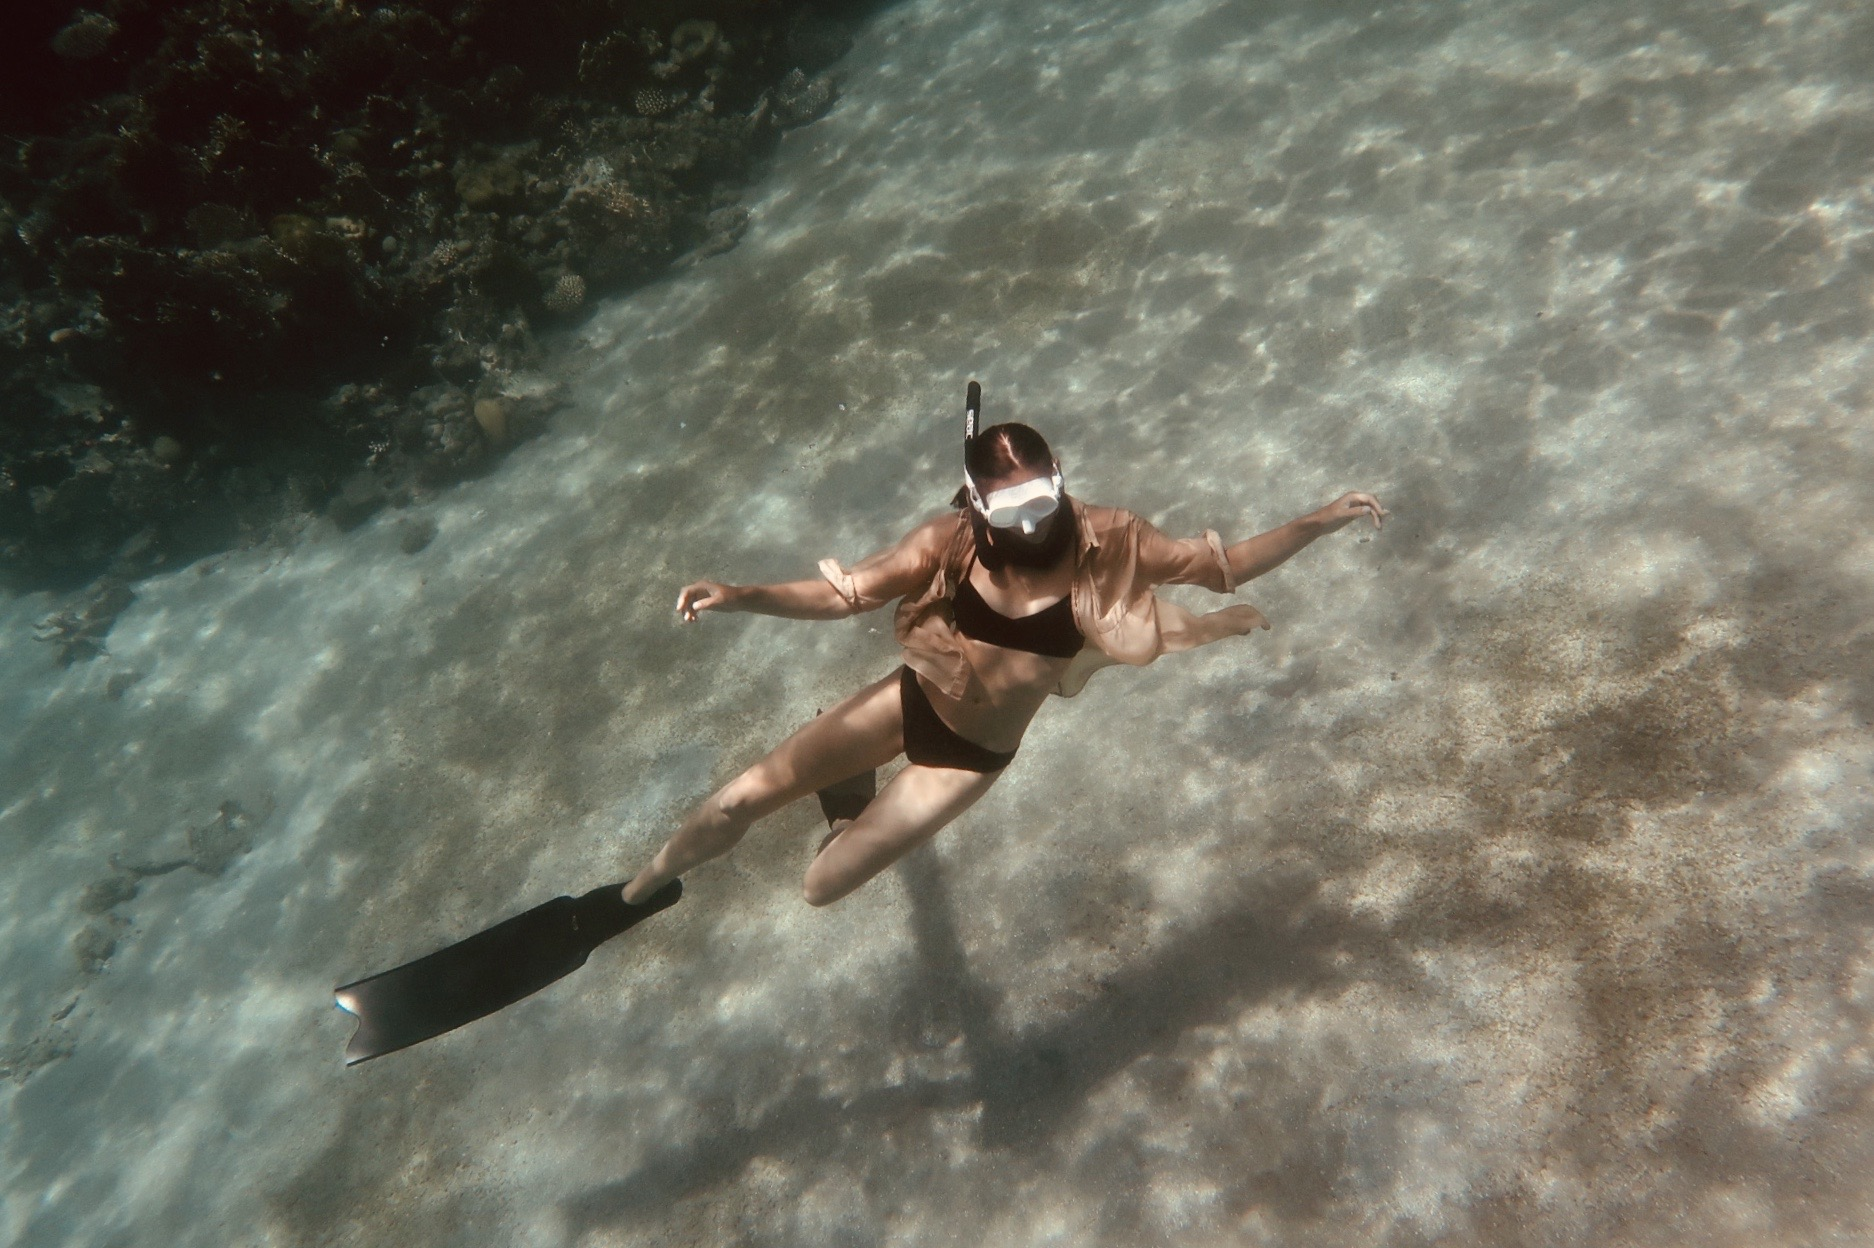 The Fitness Routine of a Freediver